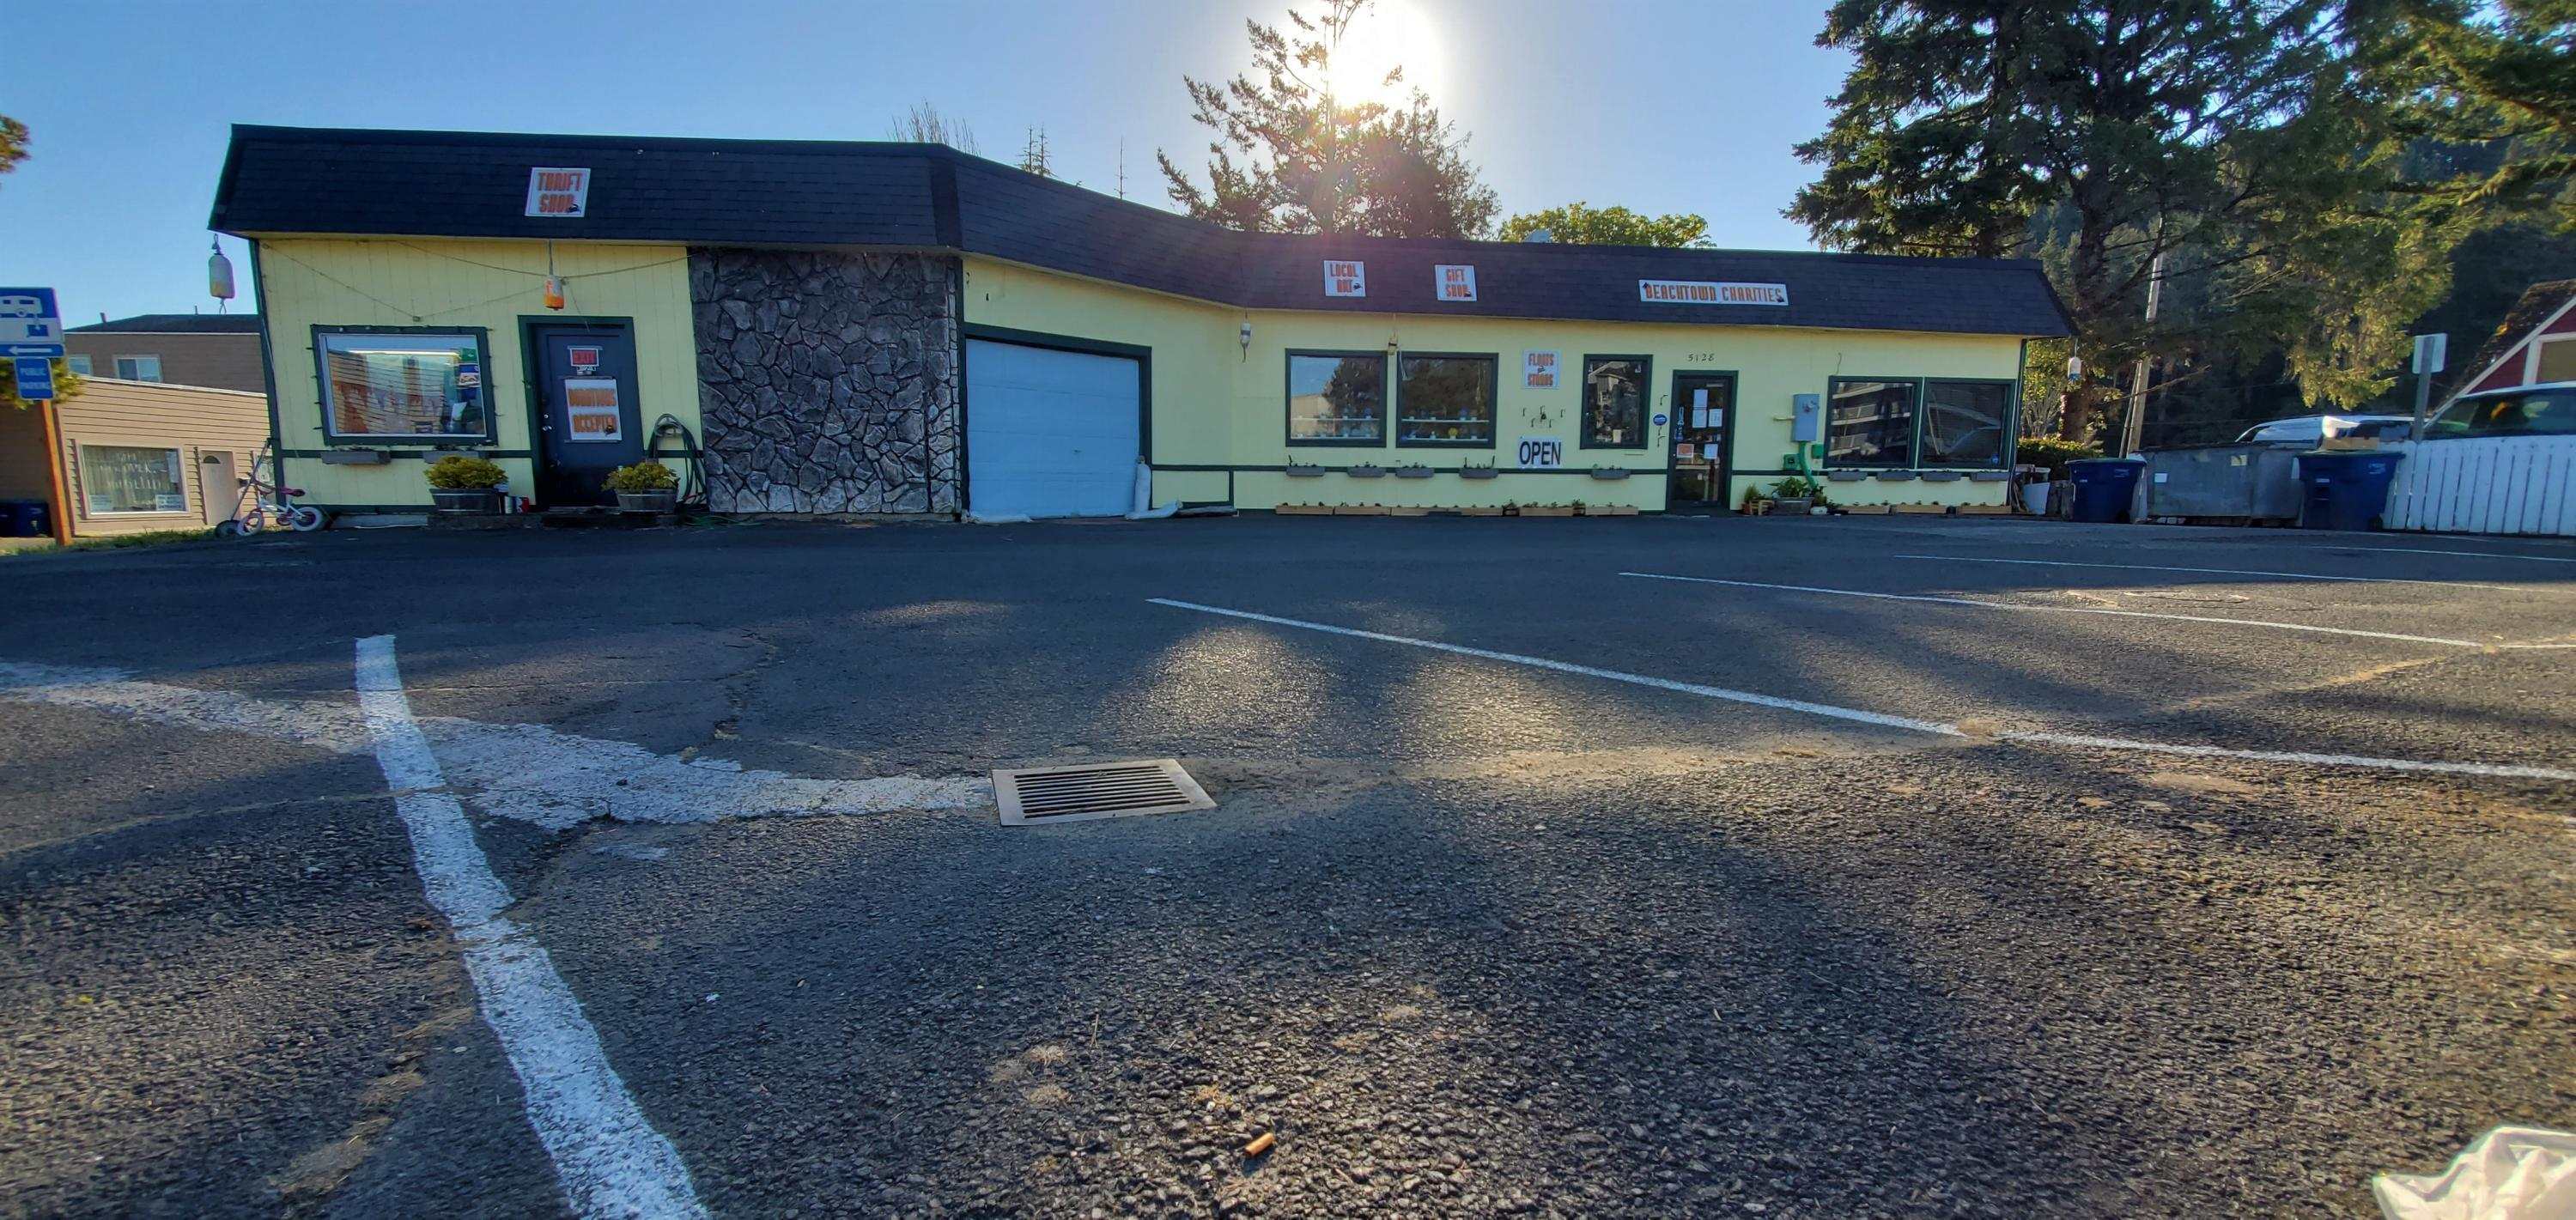 5128 SE Hwy 101, Lincoln City, OR 97367 - Morning over the building